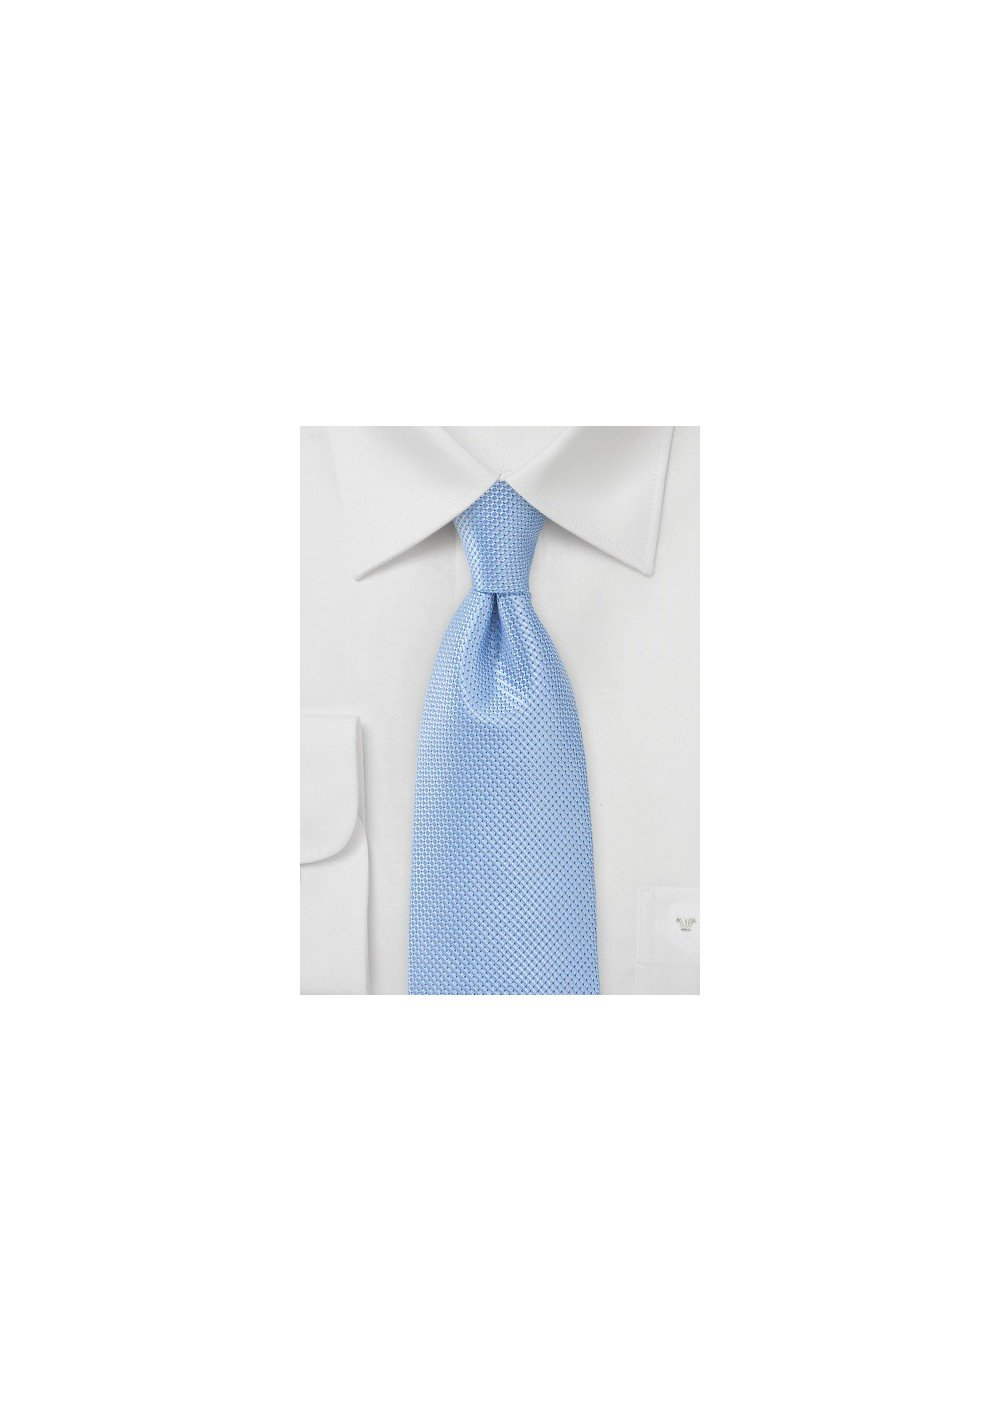 Solid Light Blue Tie with Textured Weave